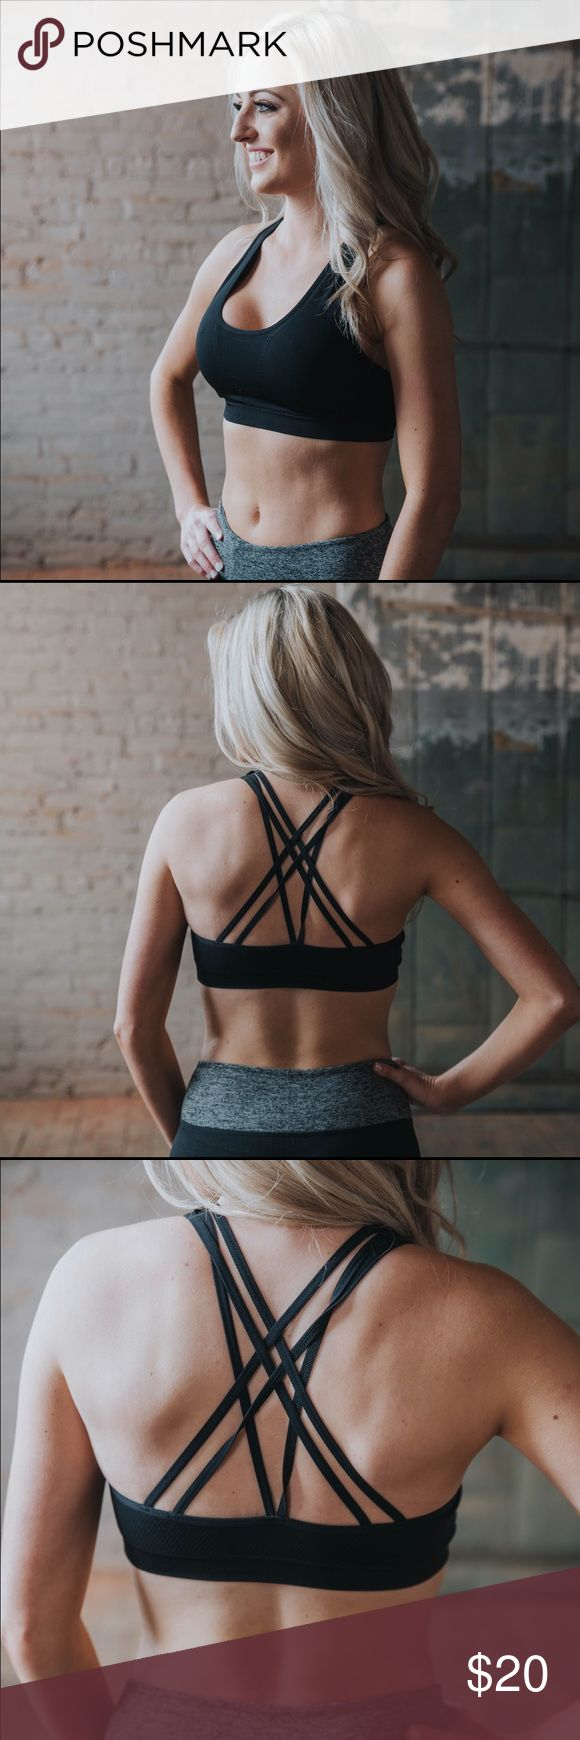 "Meet Me At The Gym- Criss Cross Black Sports Bra Lightly lined black sports bra. Model is a size 0/1, height 5'1"", bust 32D, and is wearing a XS/S. XS/S fits sizes 0-2. M/L fits sizes 4-6. Intimates & Sleepwear Bras"